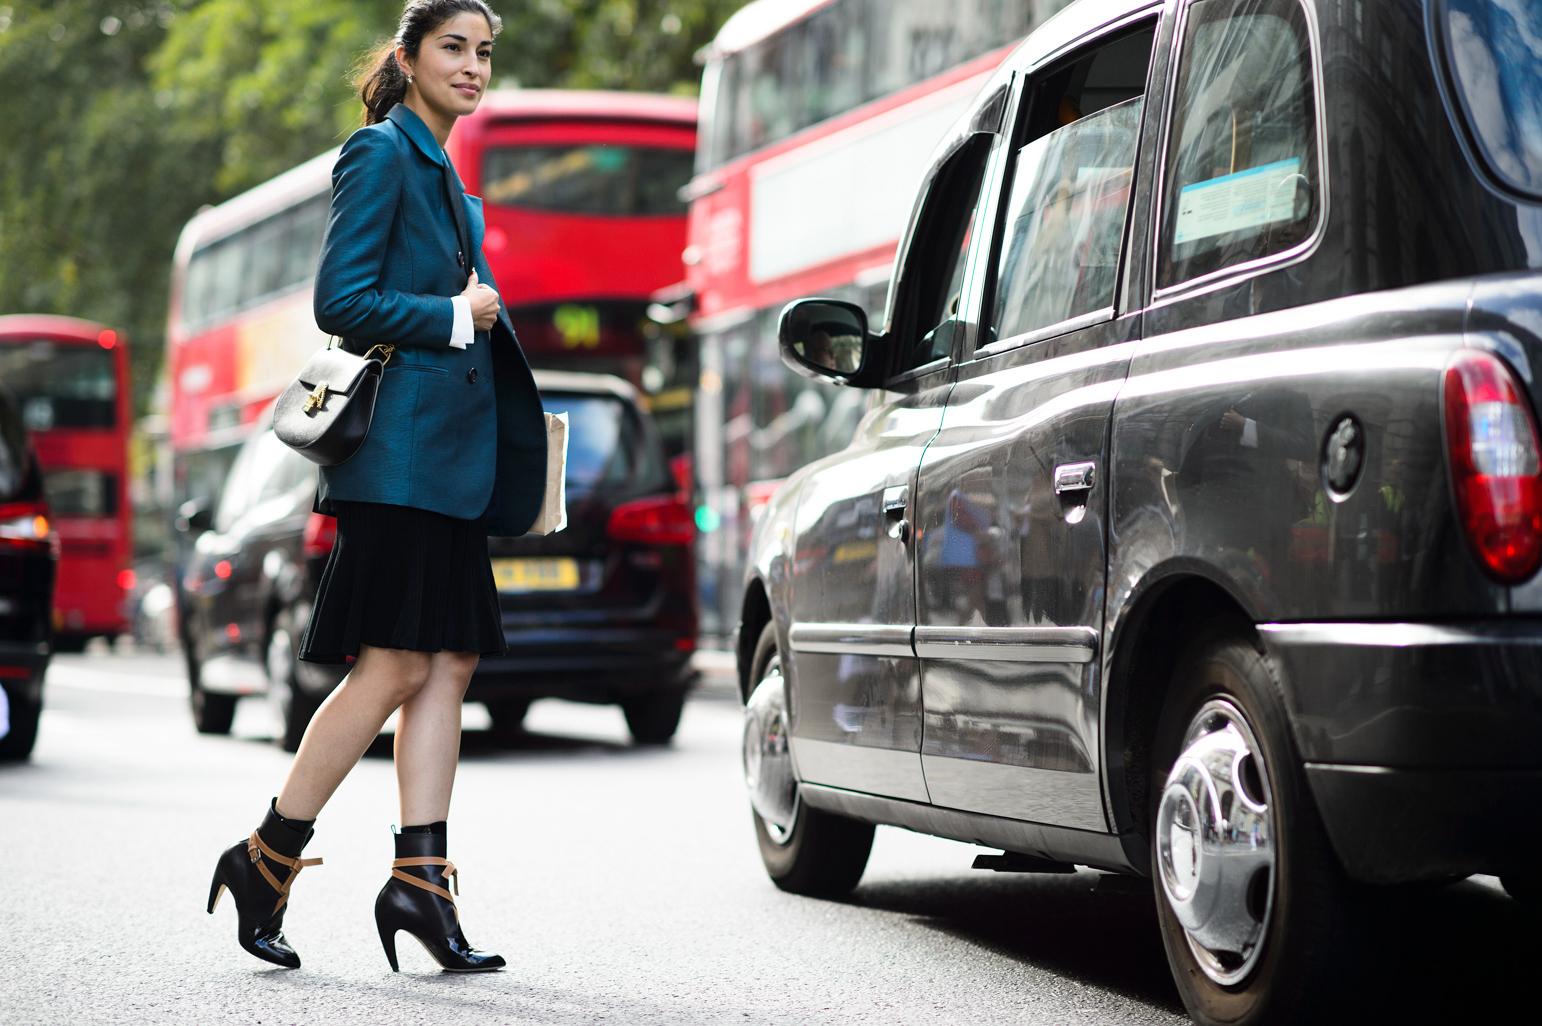 london-spring-2015-street-style-day-2-18-wmag